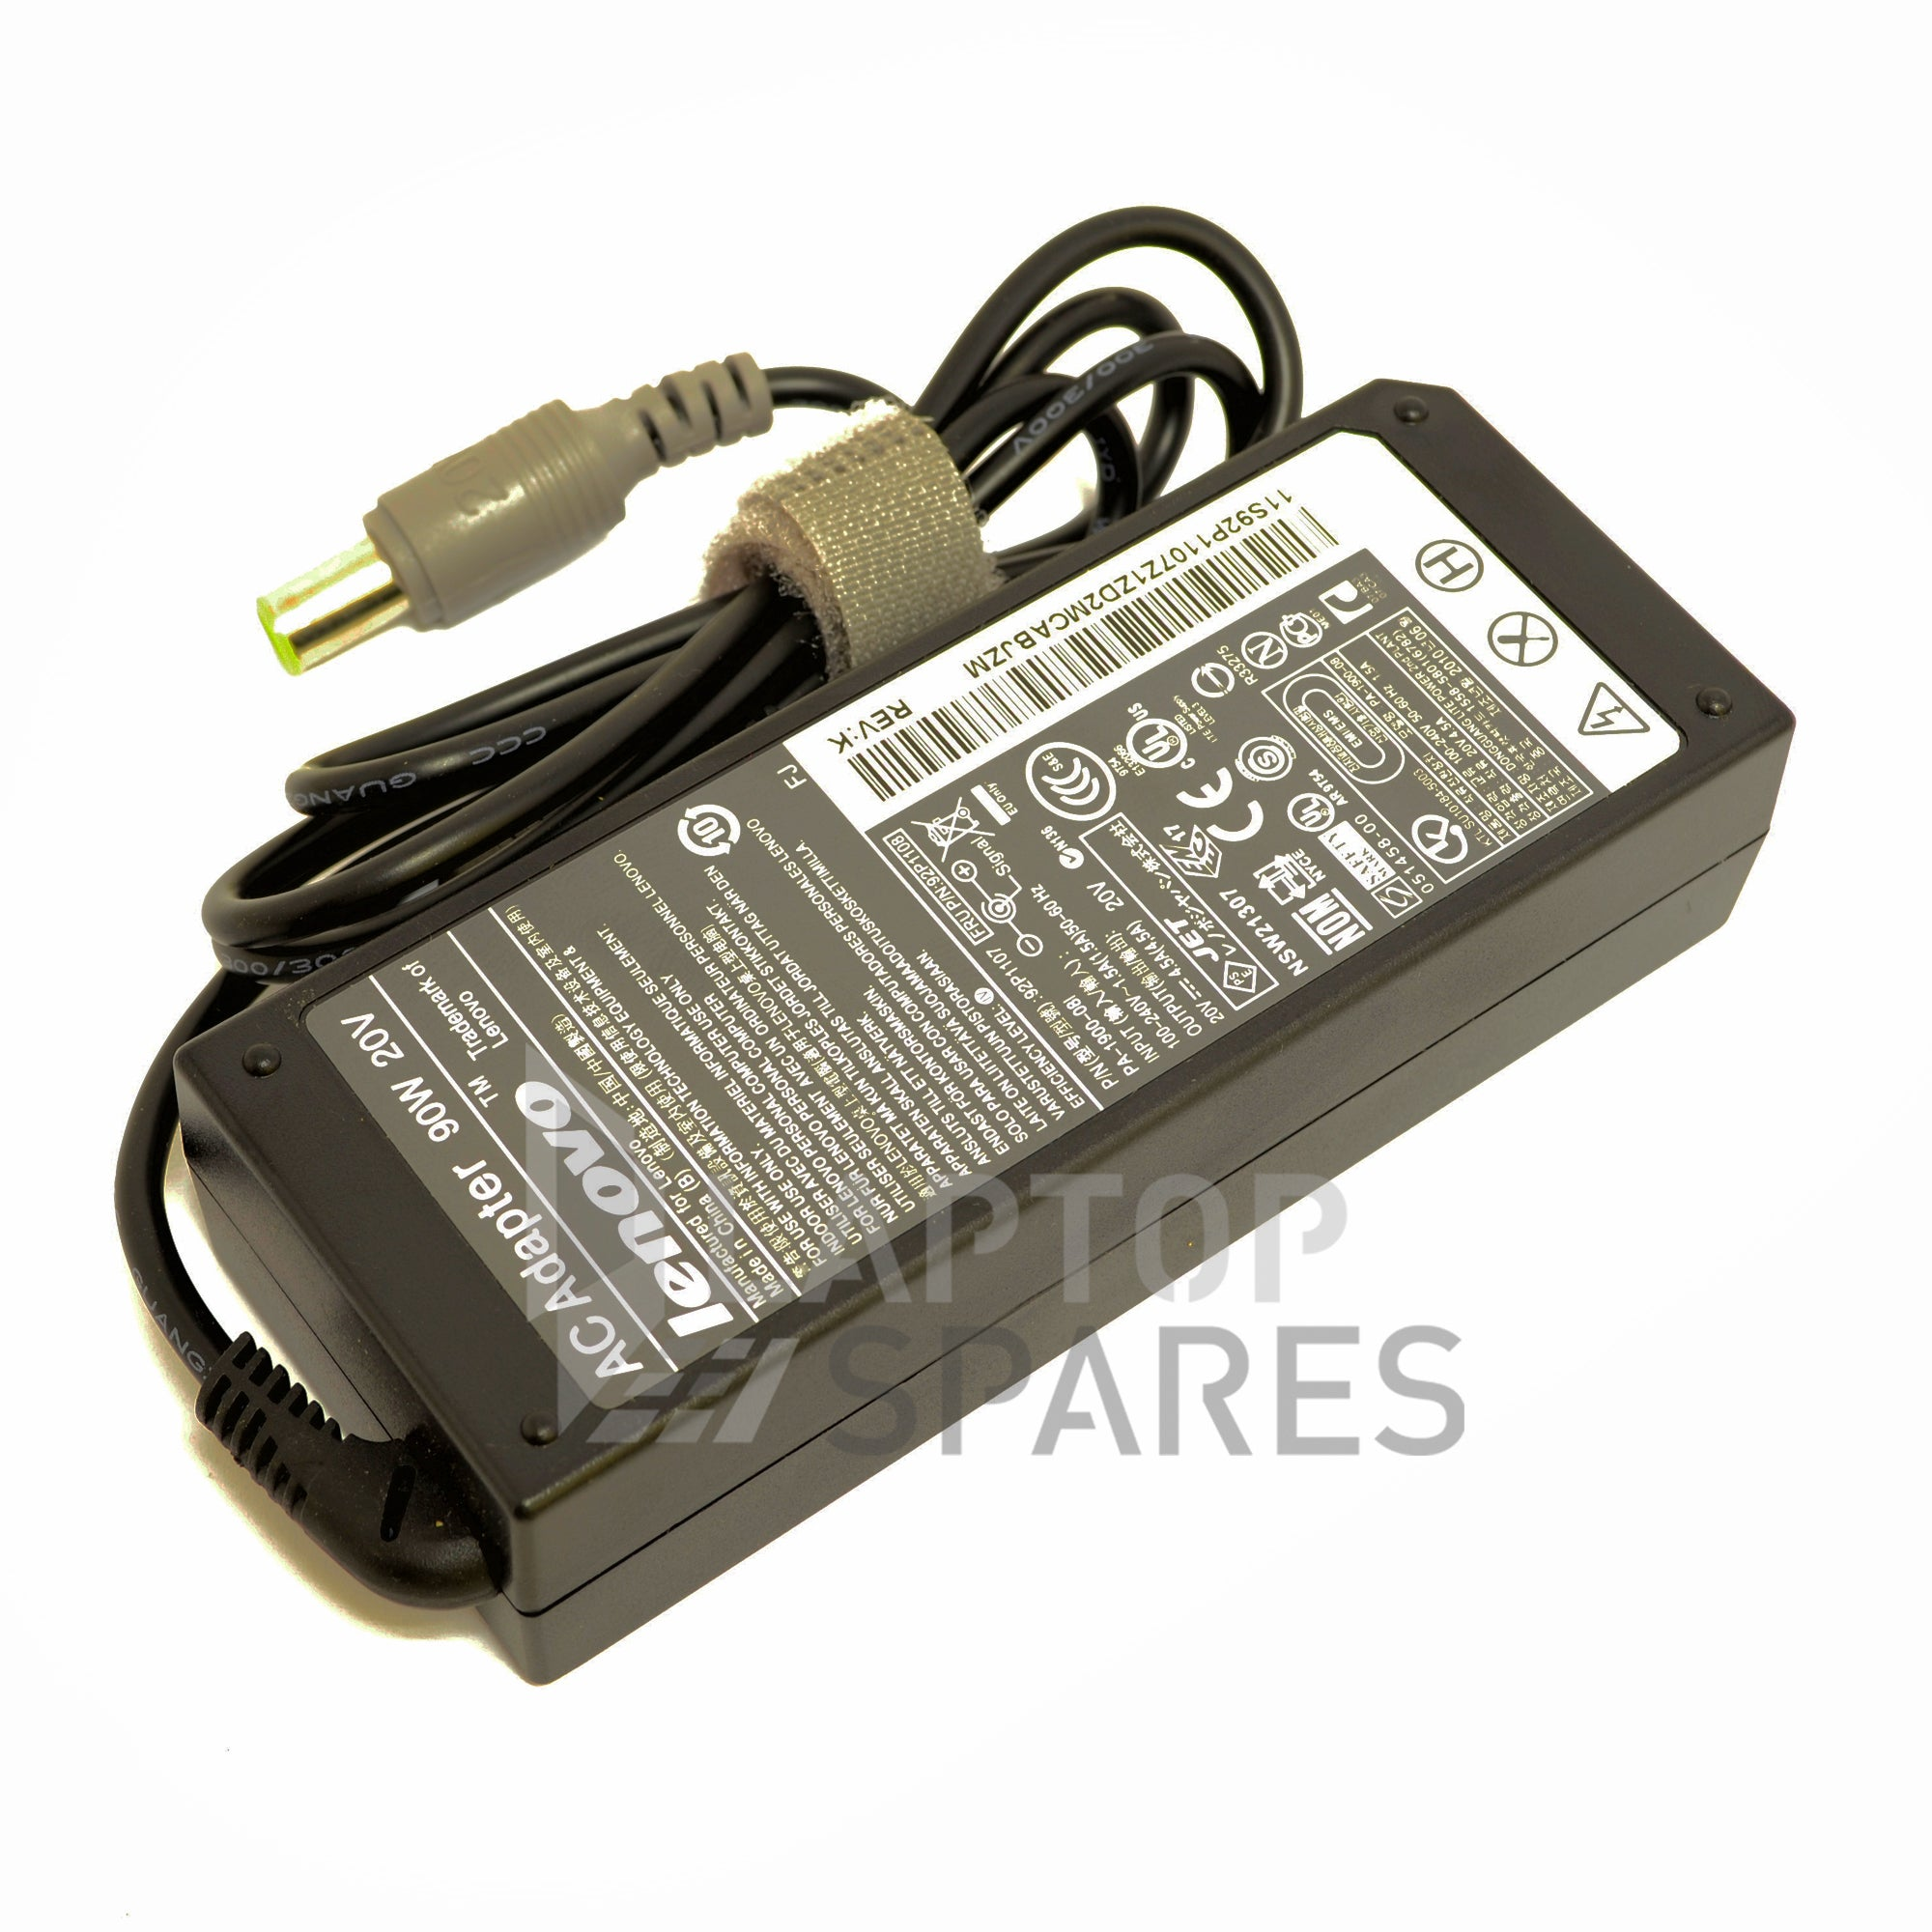 Lenovo 92P1107 92P1109 92P1110 Laptop AC Adapter Charger